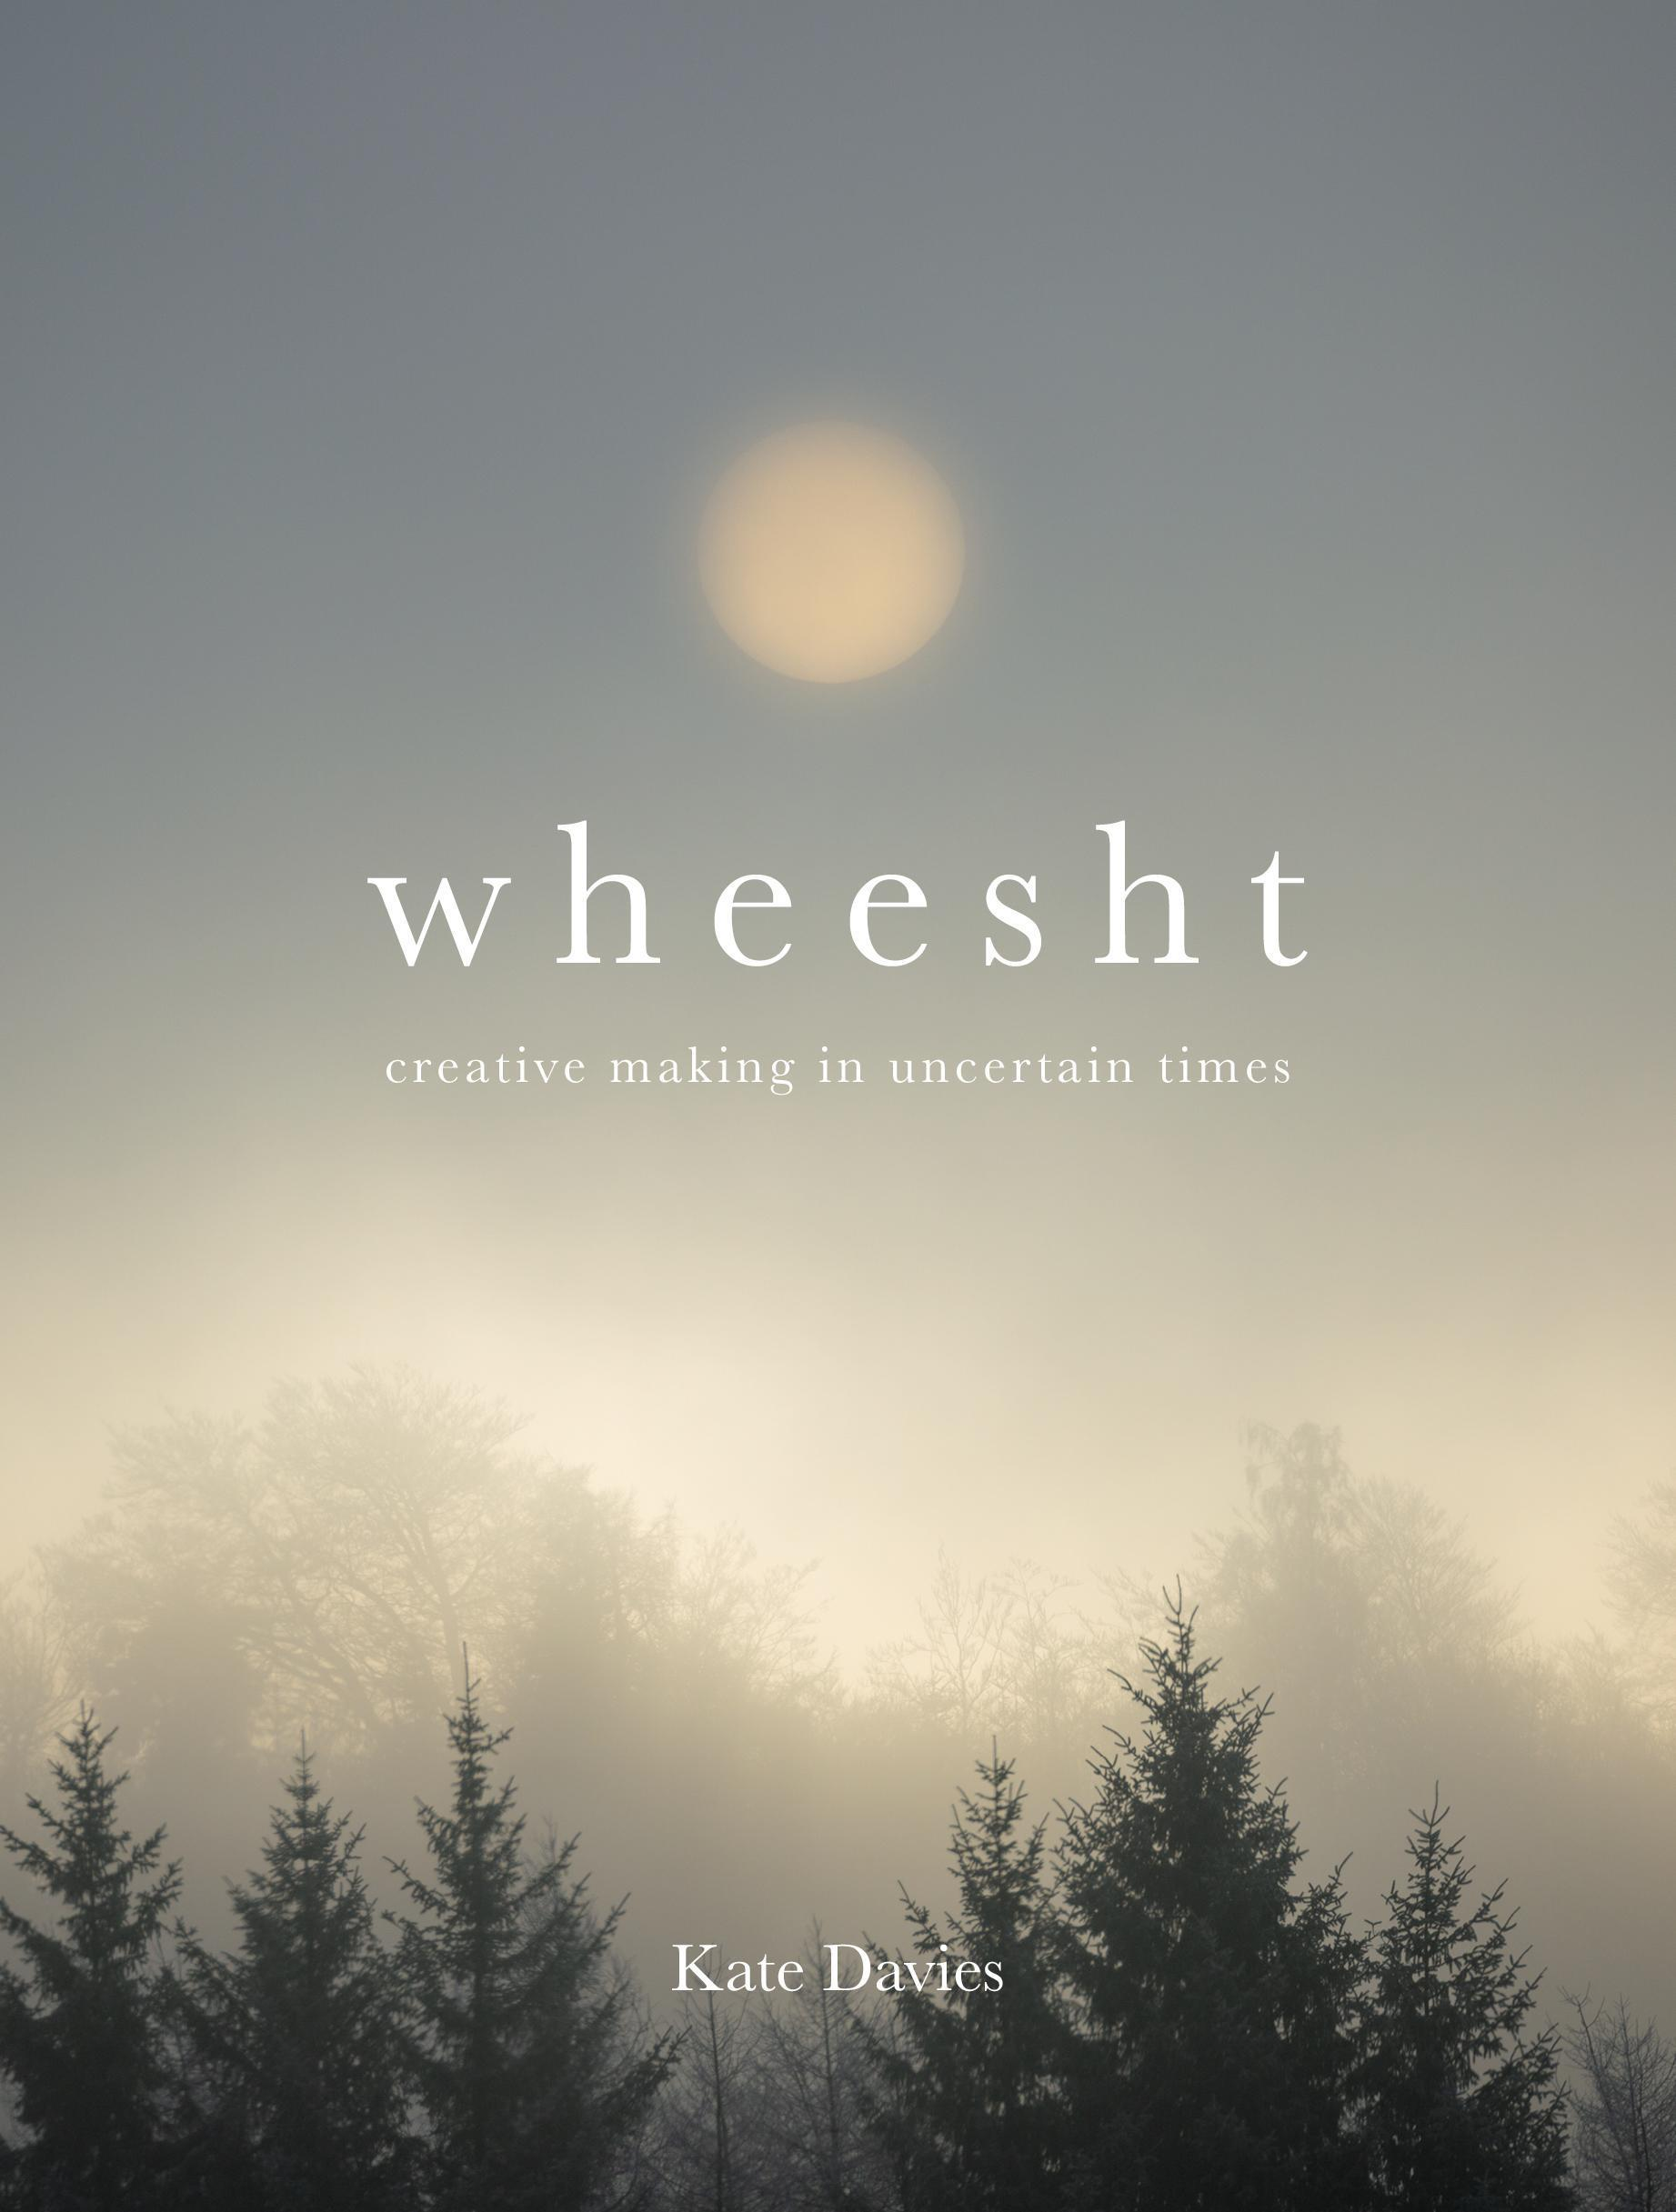 Wheesht by Kate Davies Kate Davies Designs Book